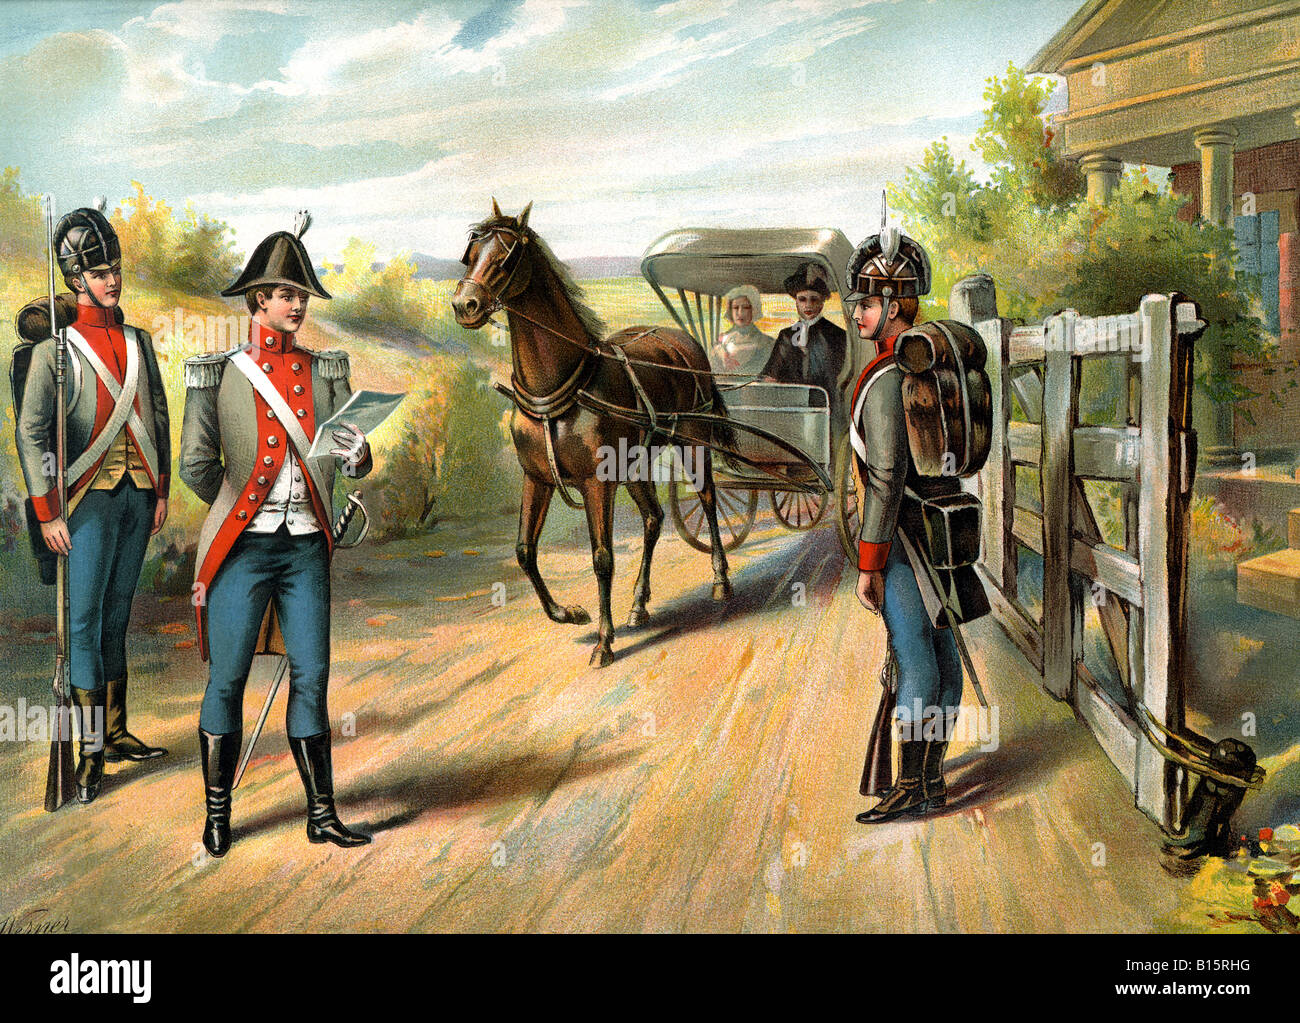 U.S. Army Officers 1802-1810 - Stock Image